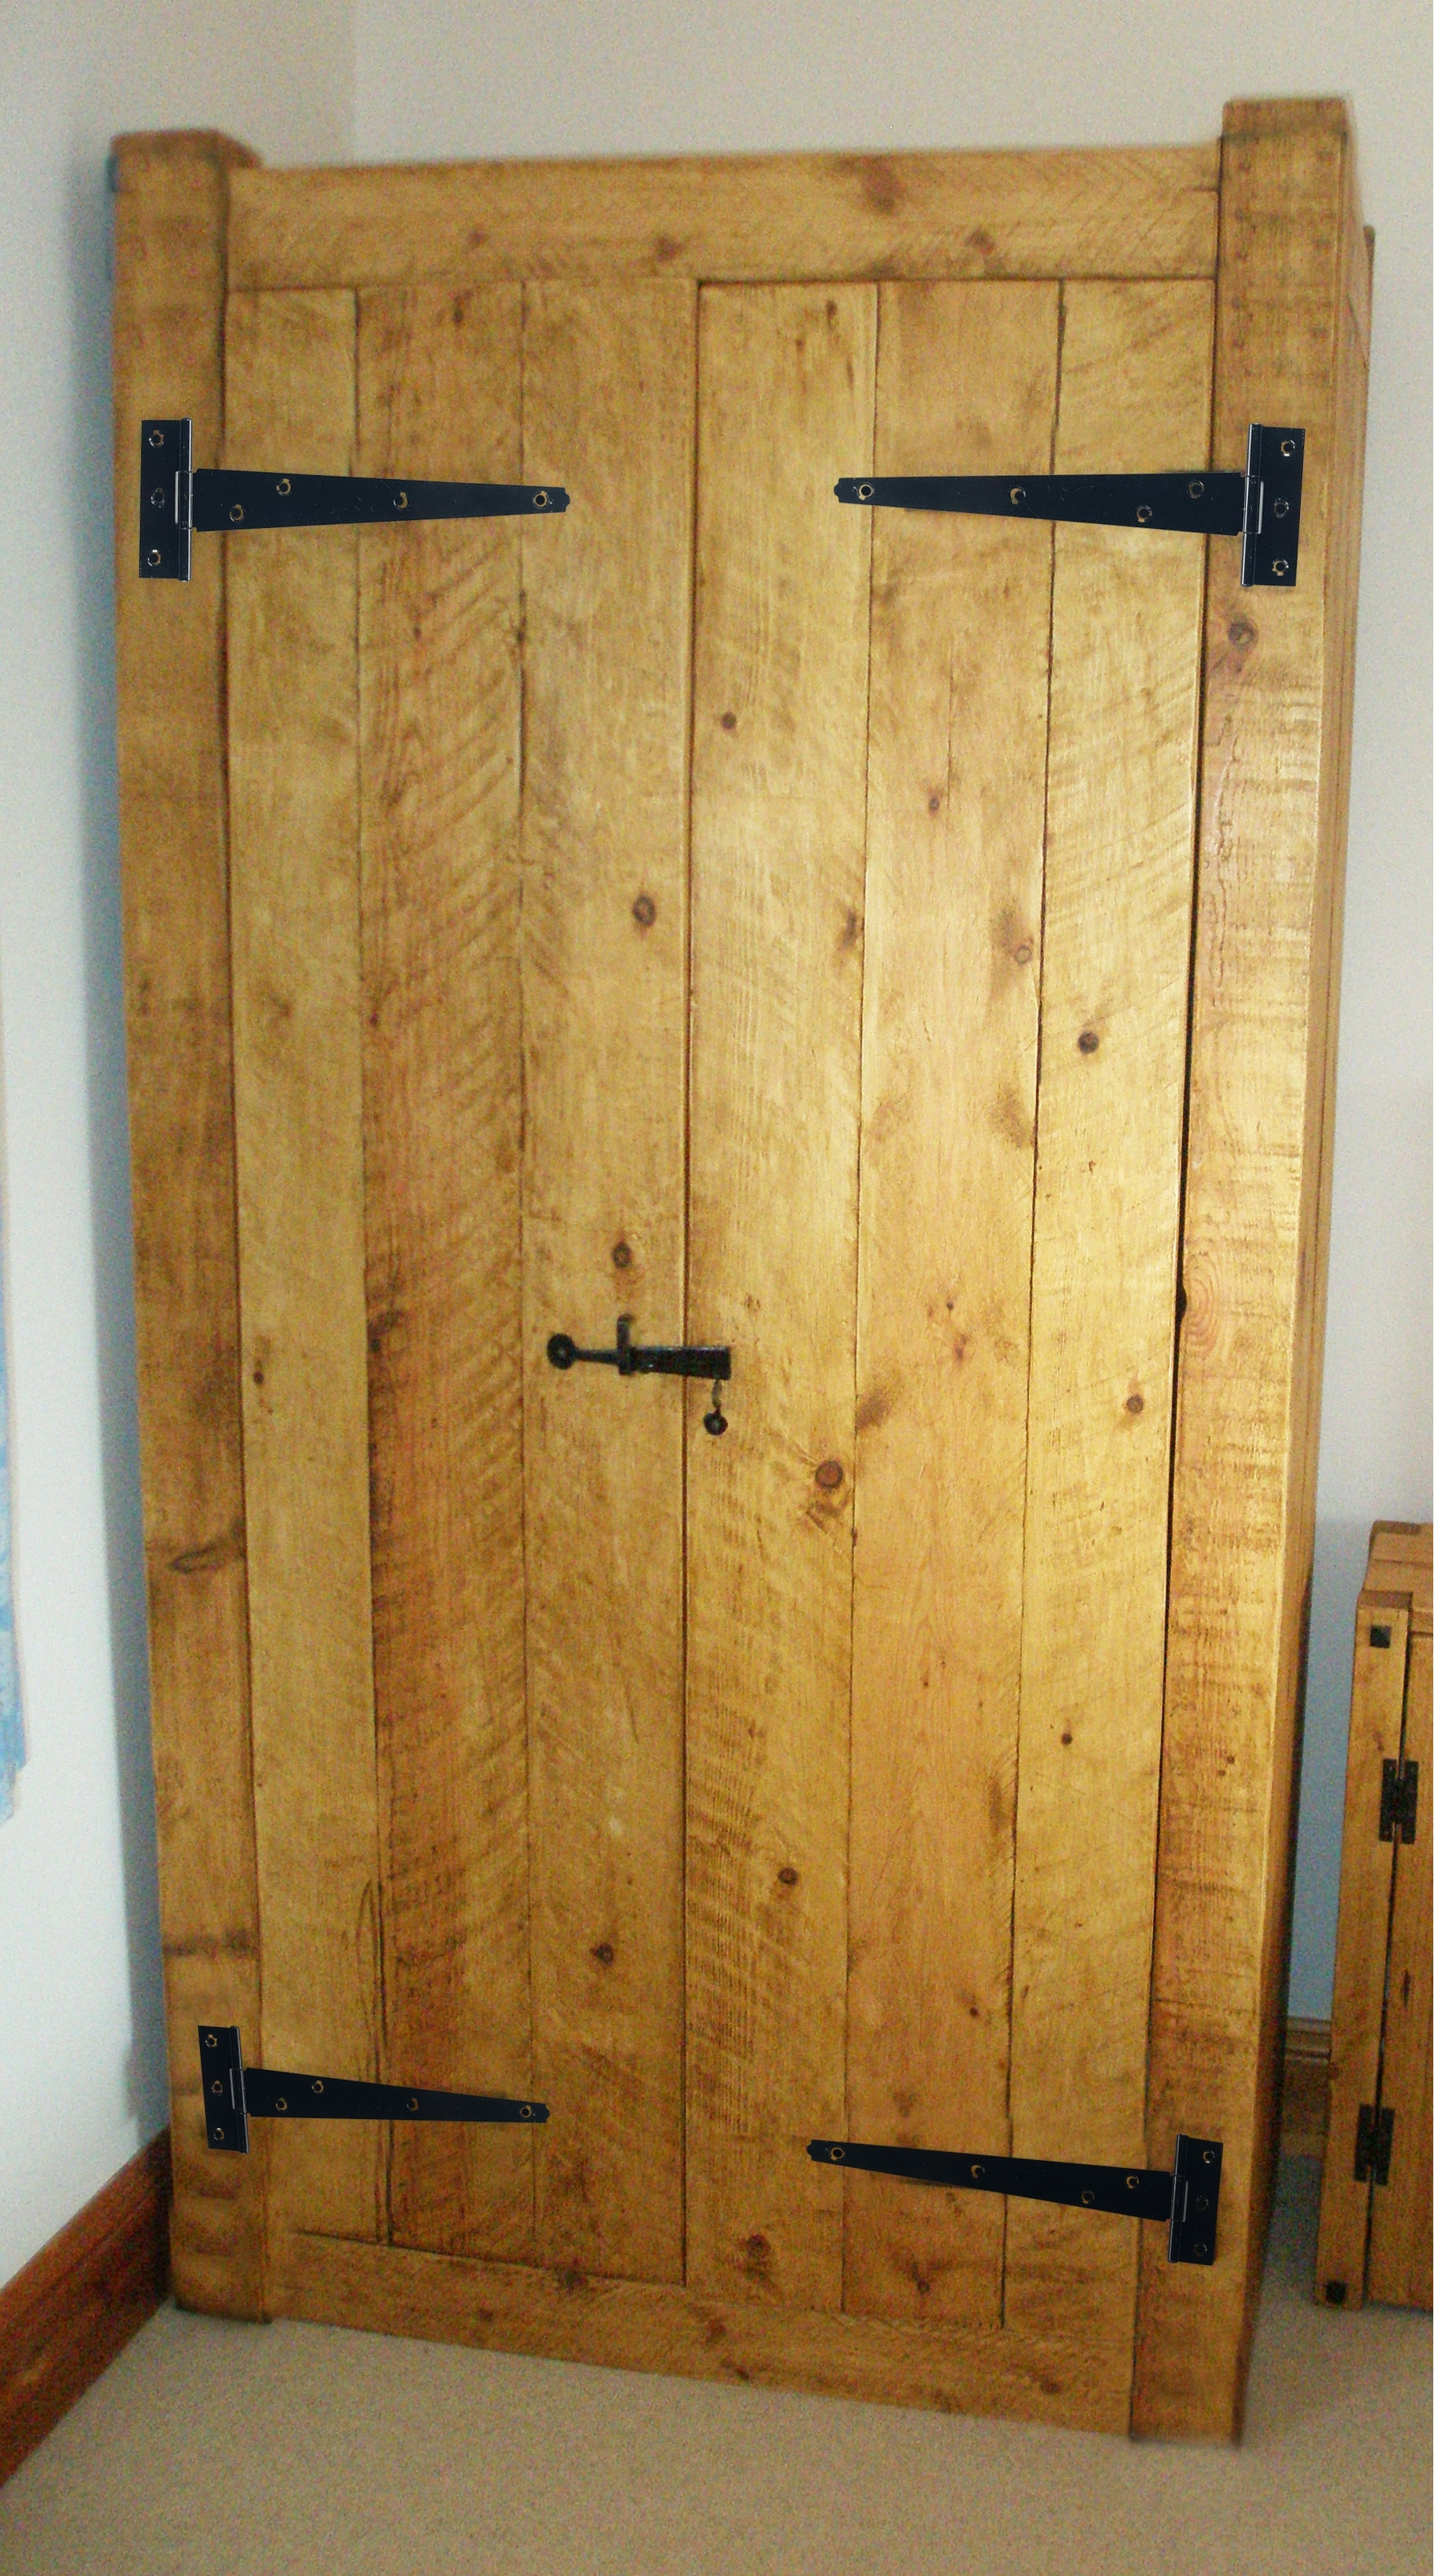 Wooden Wardrobes Pertaining To Latest The Atlow Wardrobe – The Cool Wood Company (View 15 of 15)